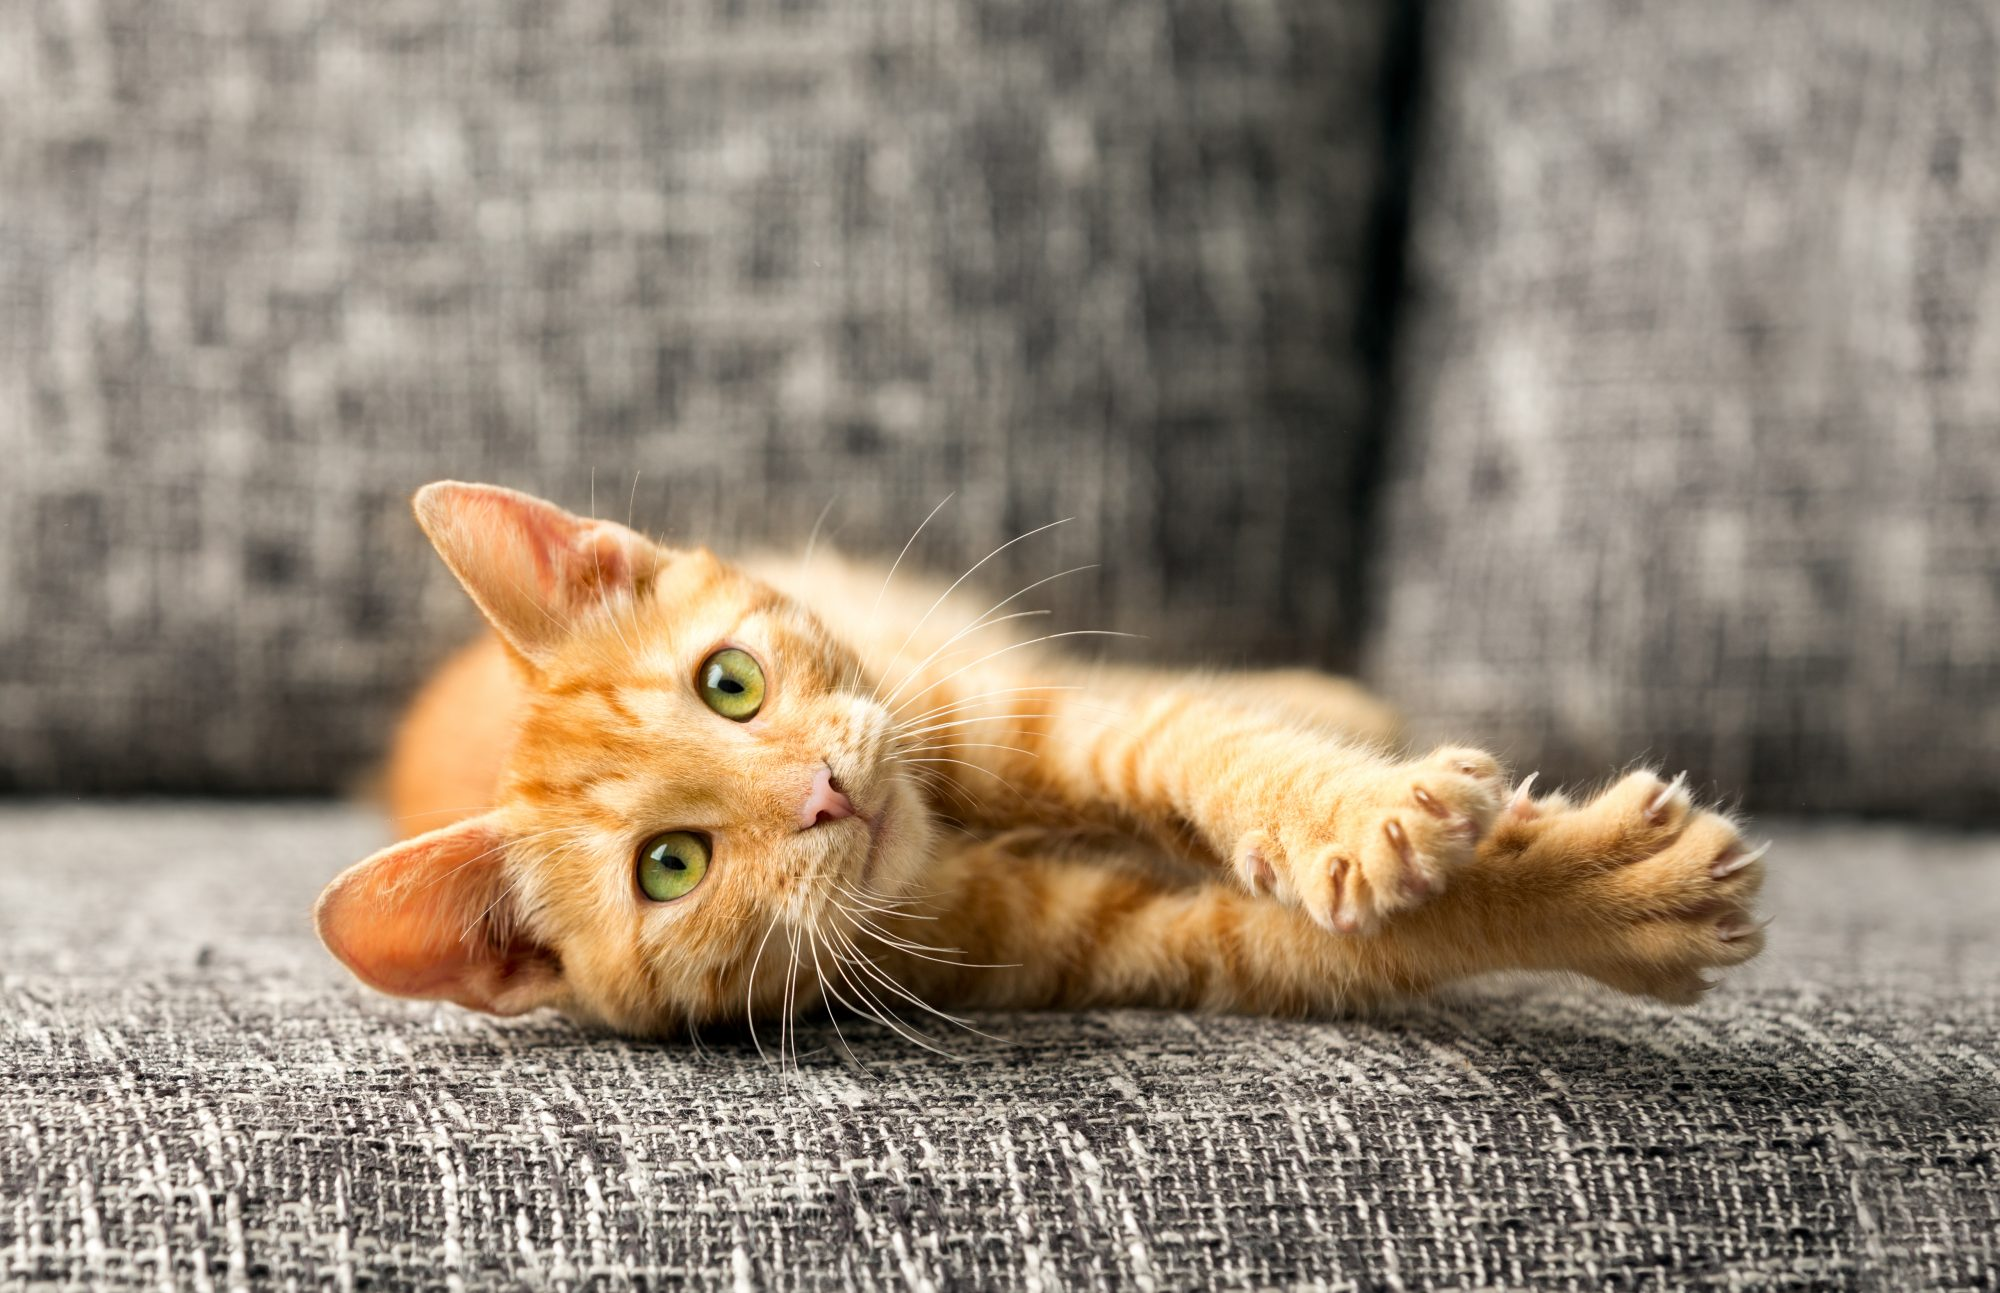 Cat lying on a couch